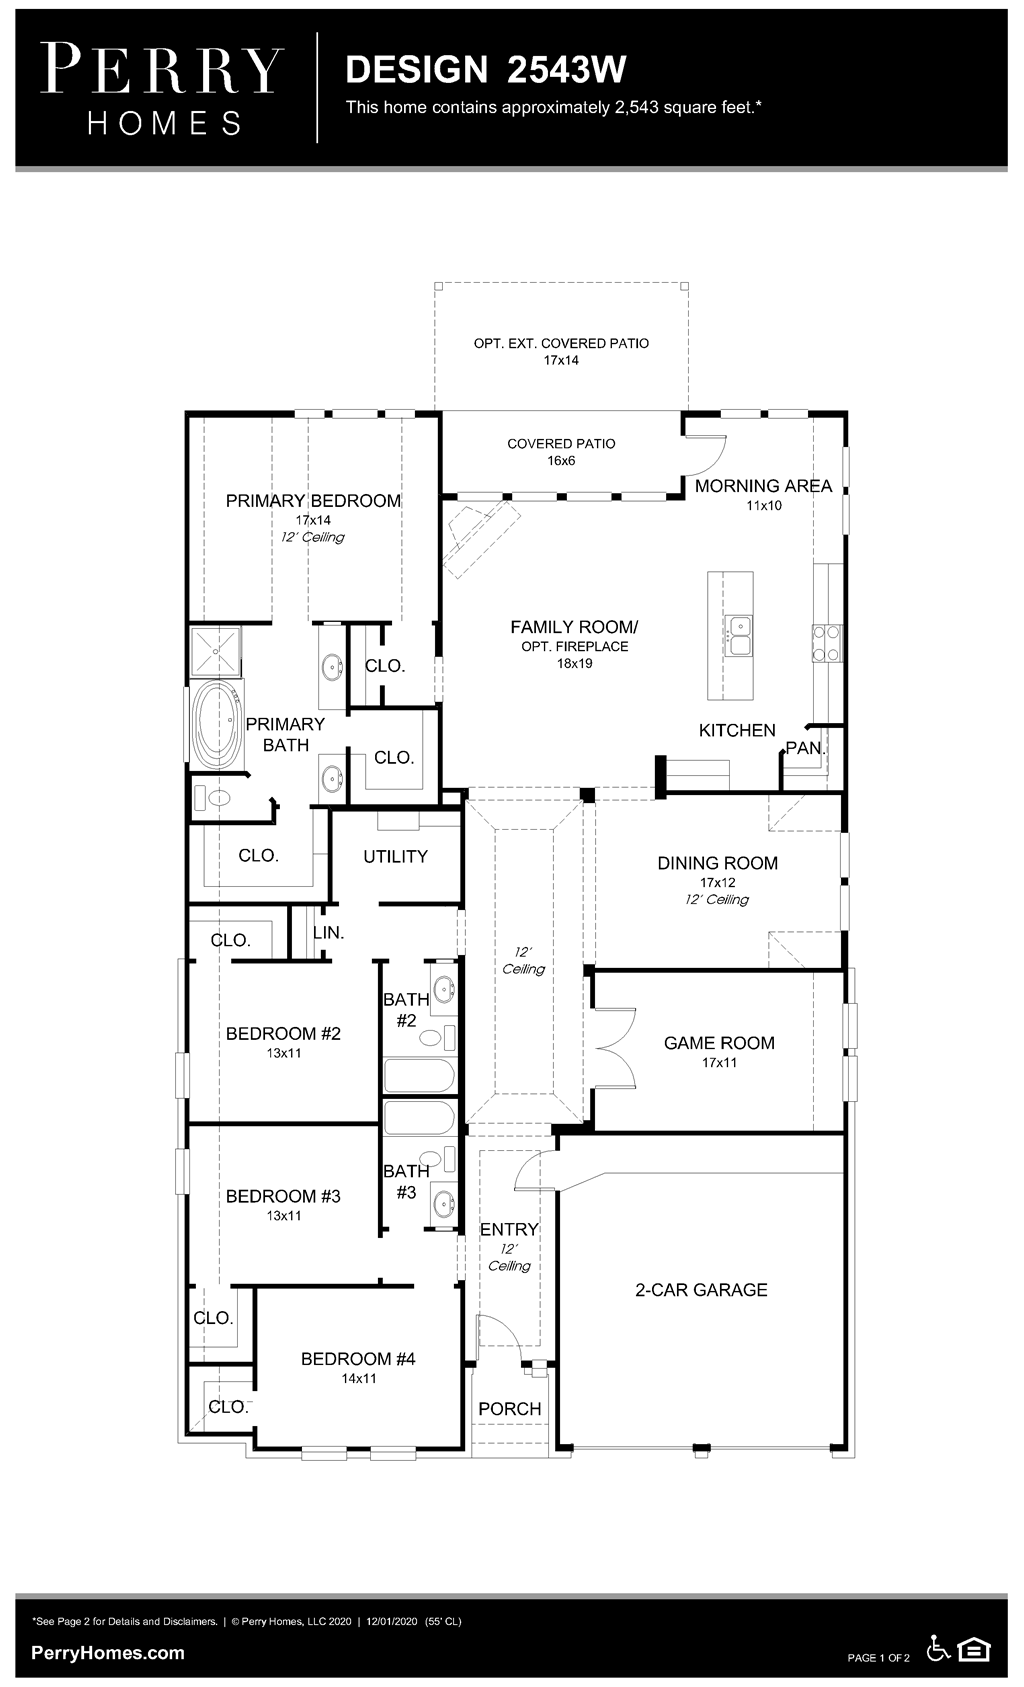 Floor Plan for 2543W